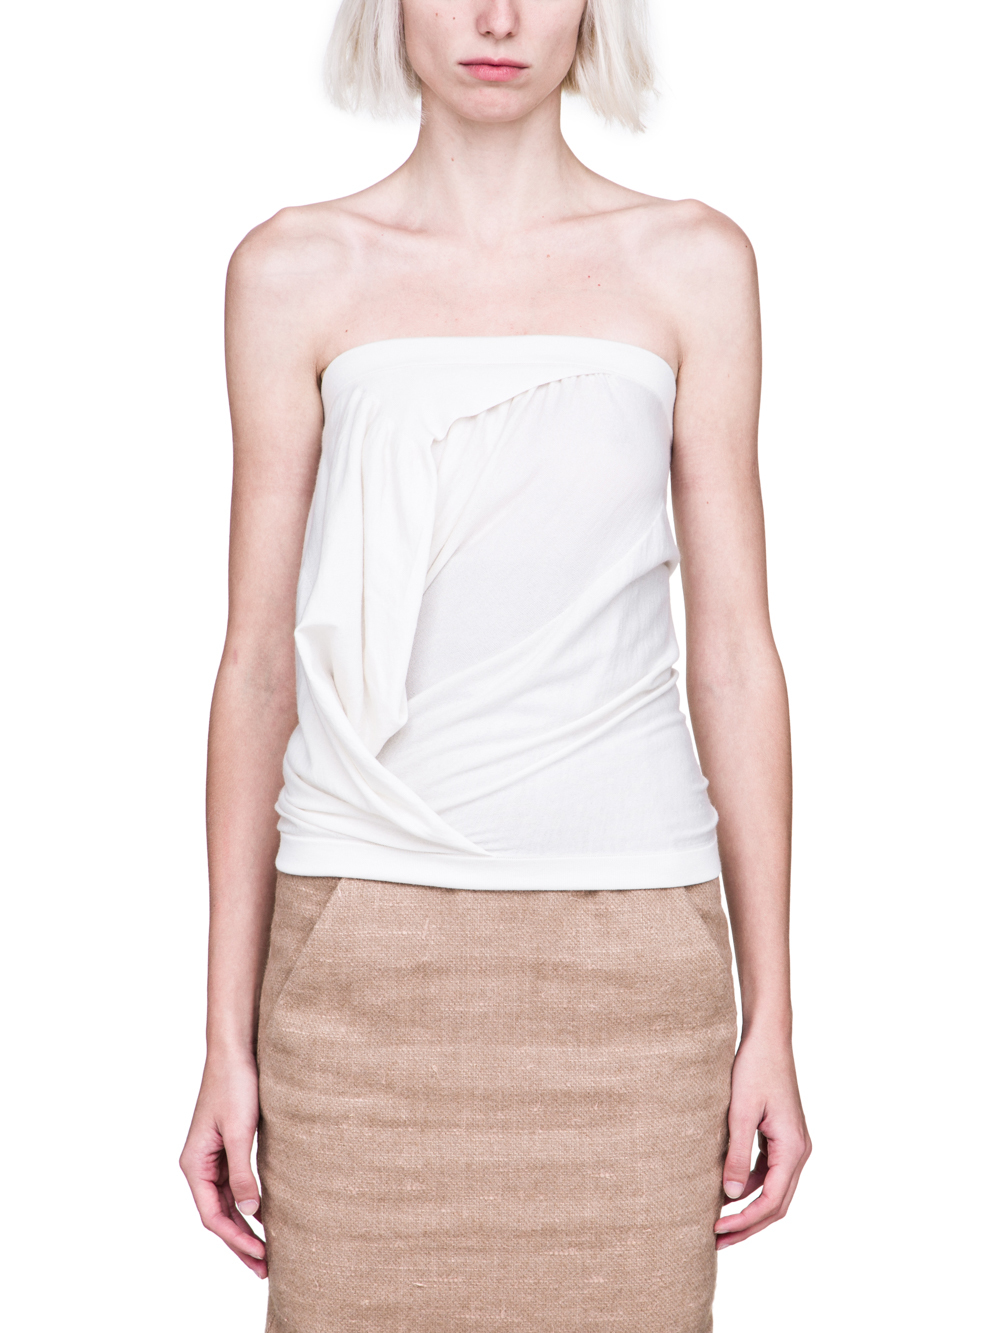 RICK OWENS FW18 SISYPHUS OFF-THE-RUNWAY BUSTIER TOP IN NATURAL STRETCH CASHMERE